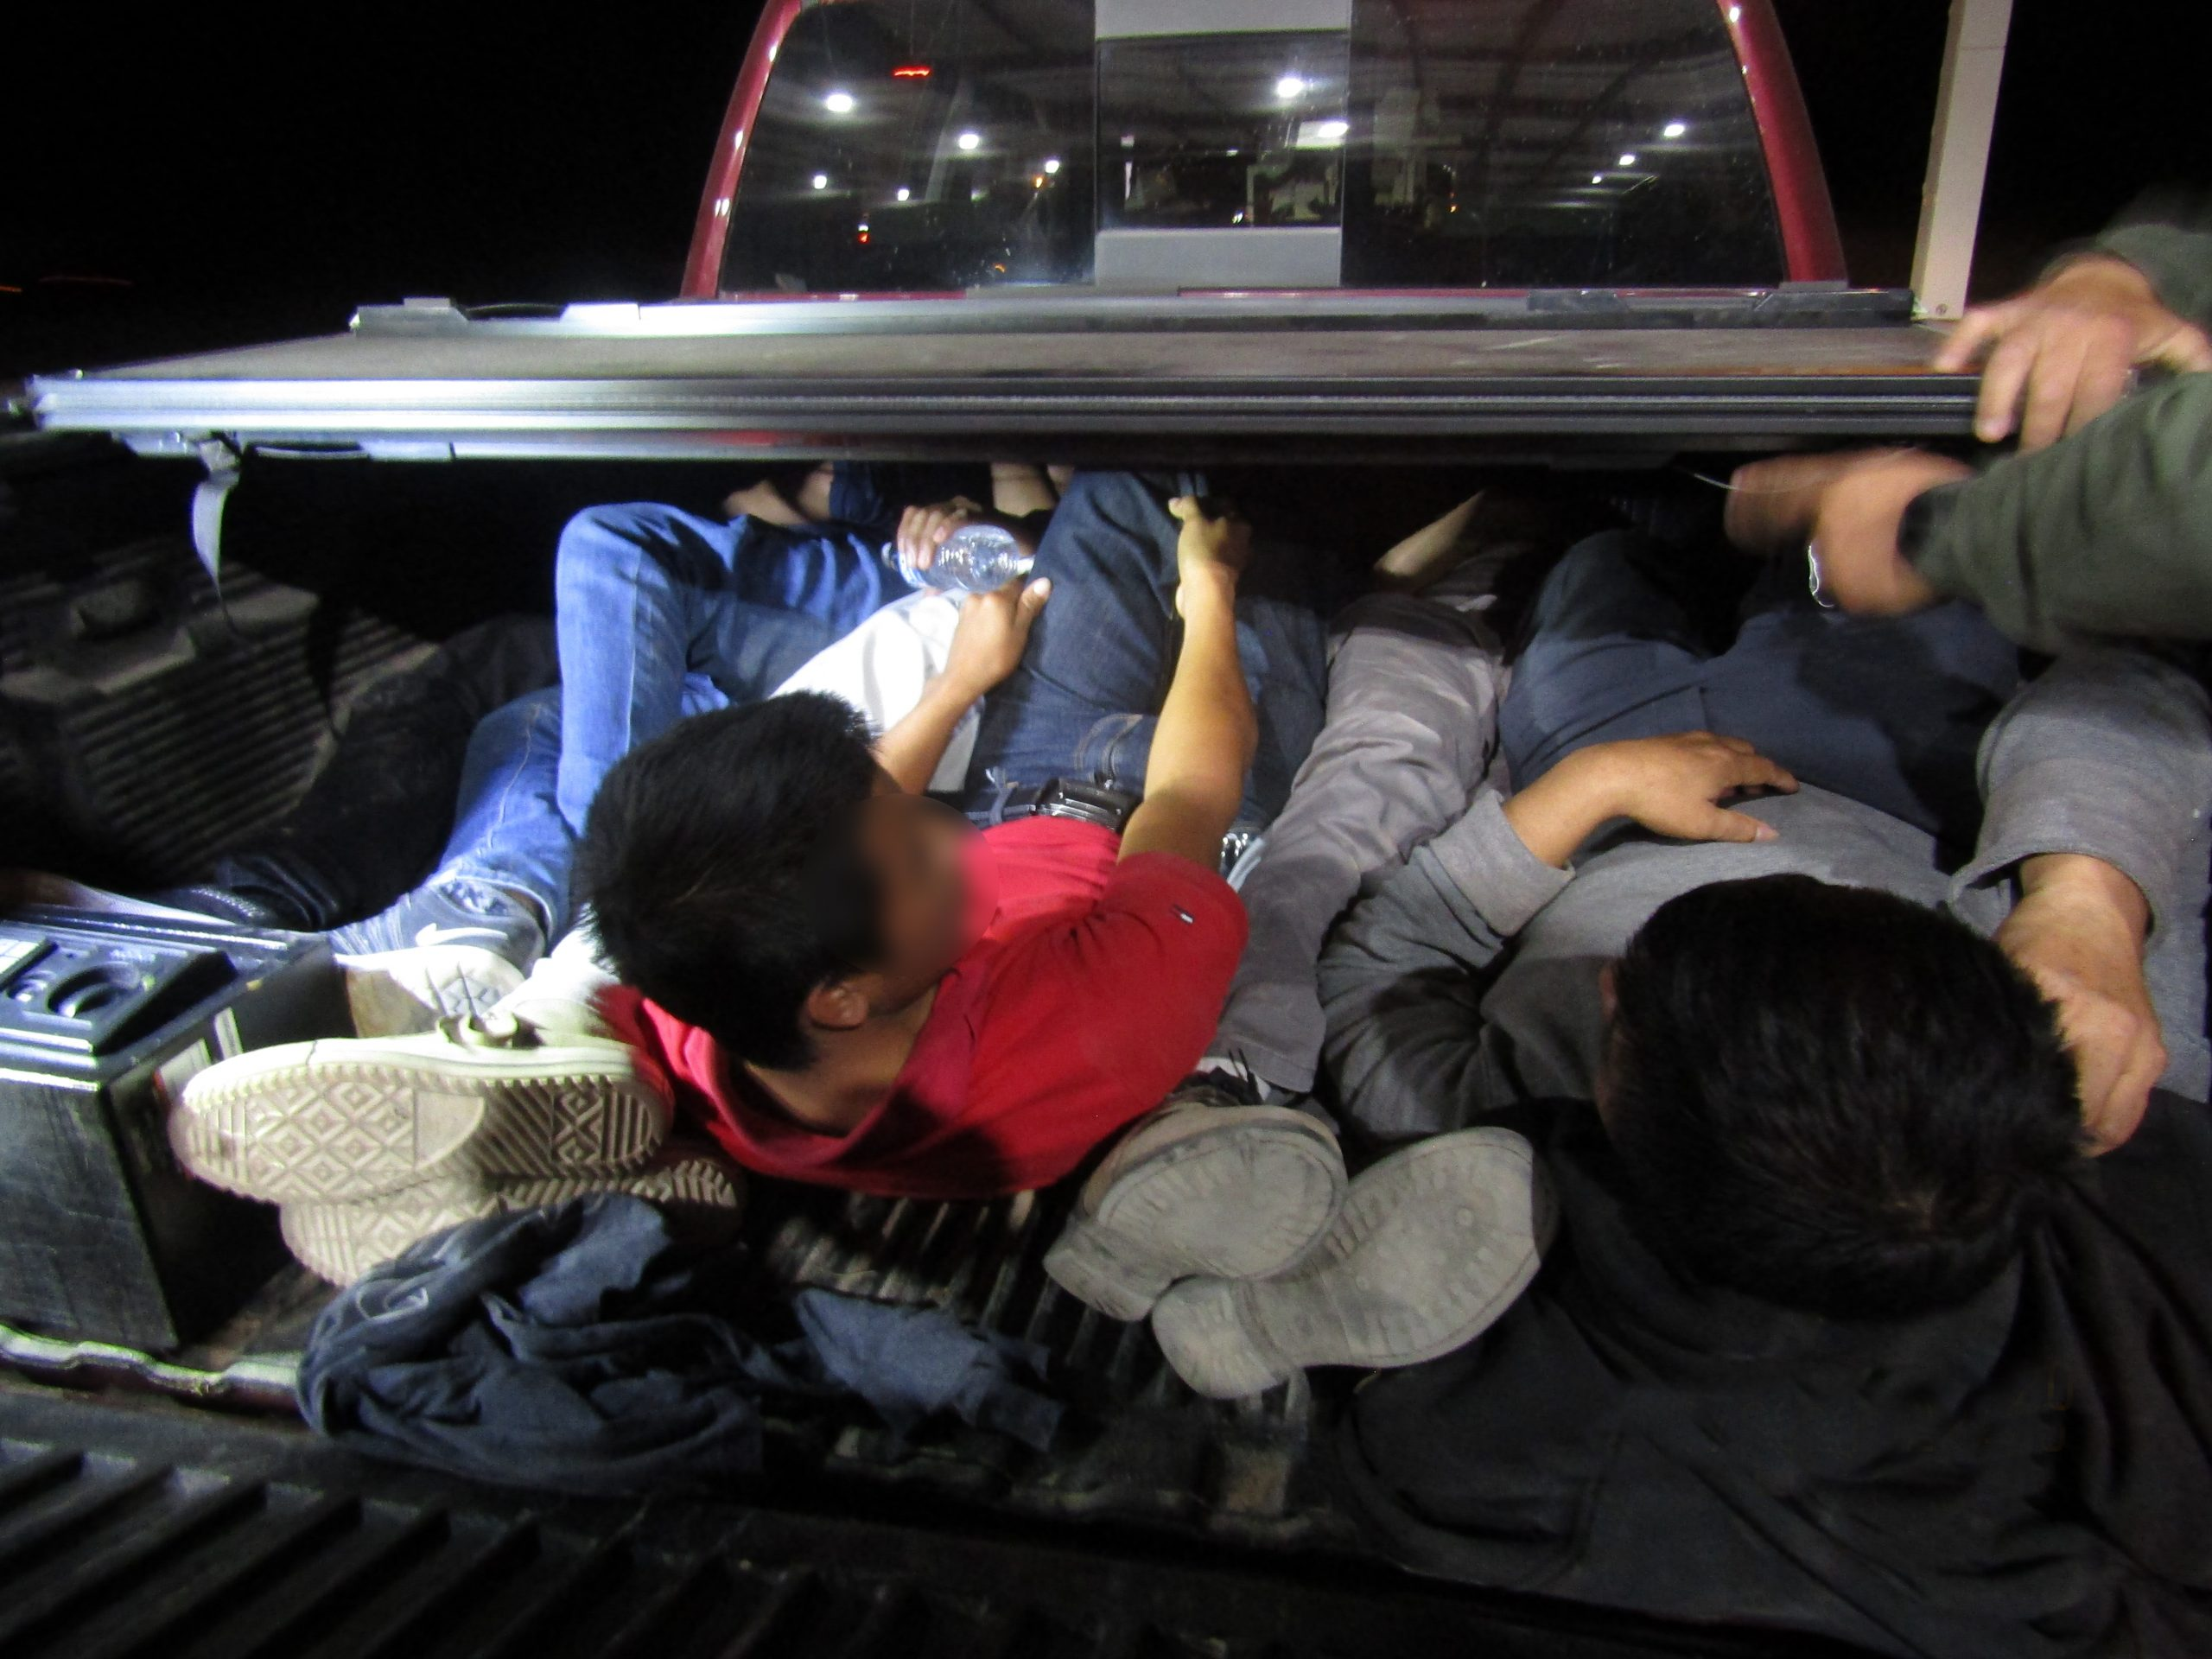 Over 20 migrants found hidden in truck bed and trailer at Sierra Blanca checkpoint 3